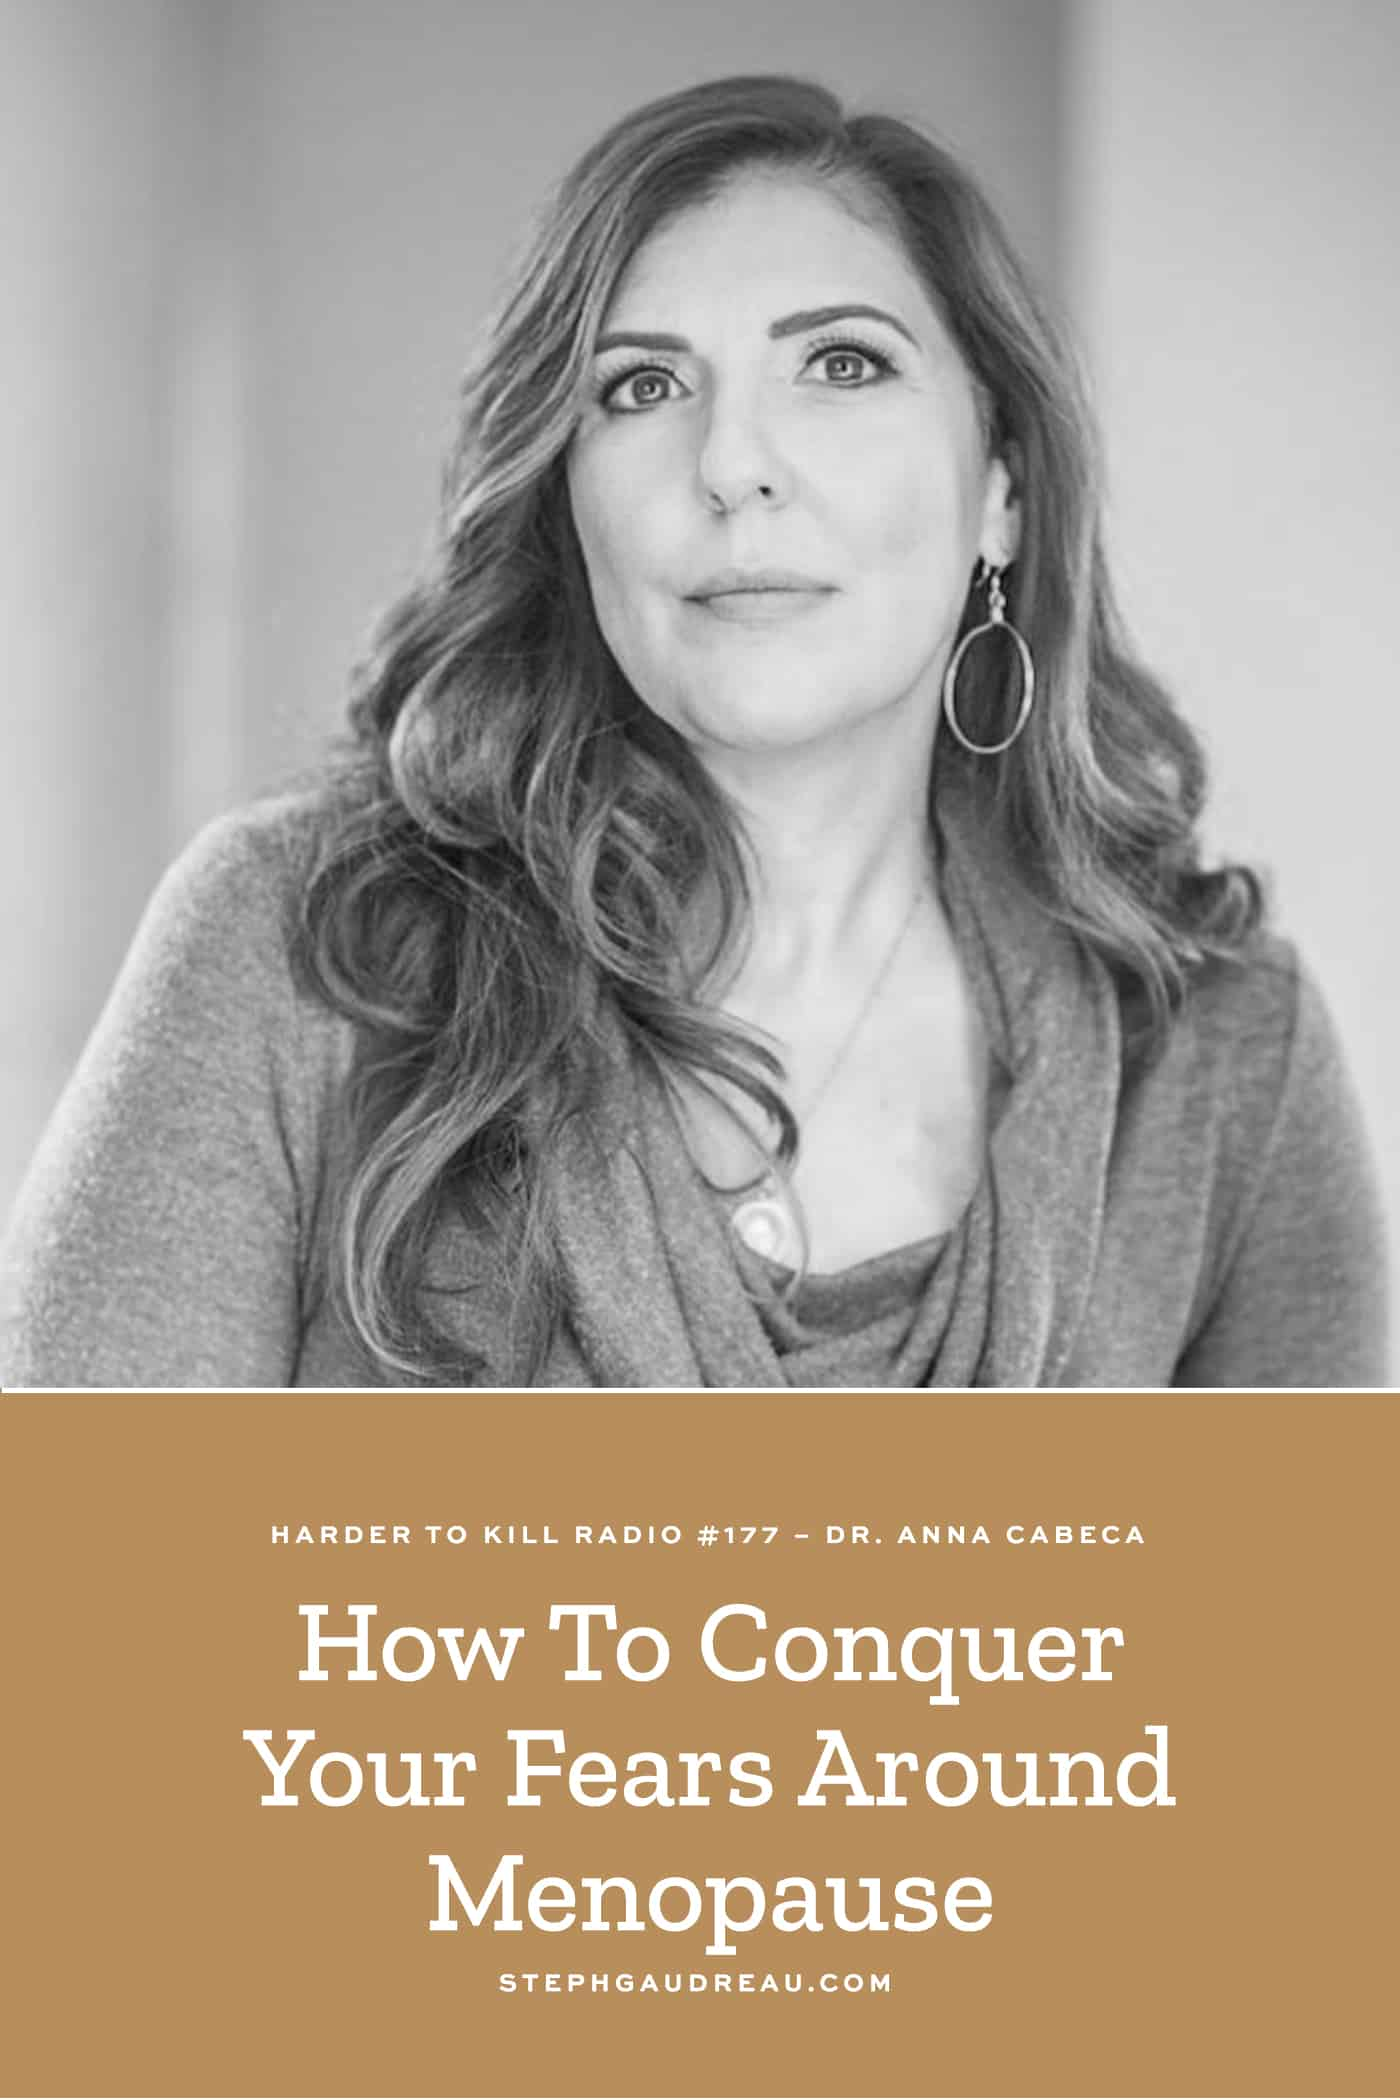 Harder to Kill 177 How To Conquer Your Fears Around Menopause w/ Dr. Anna Cabeca